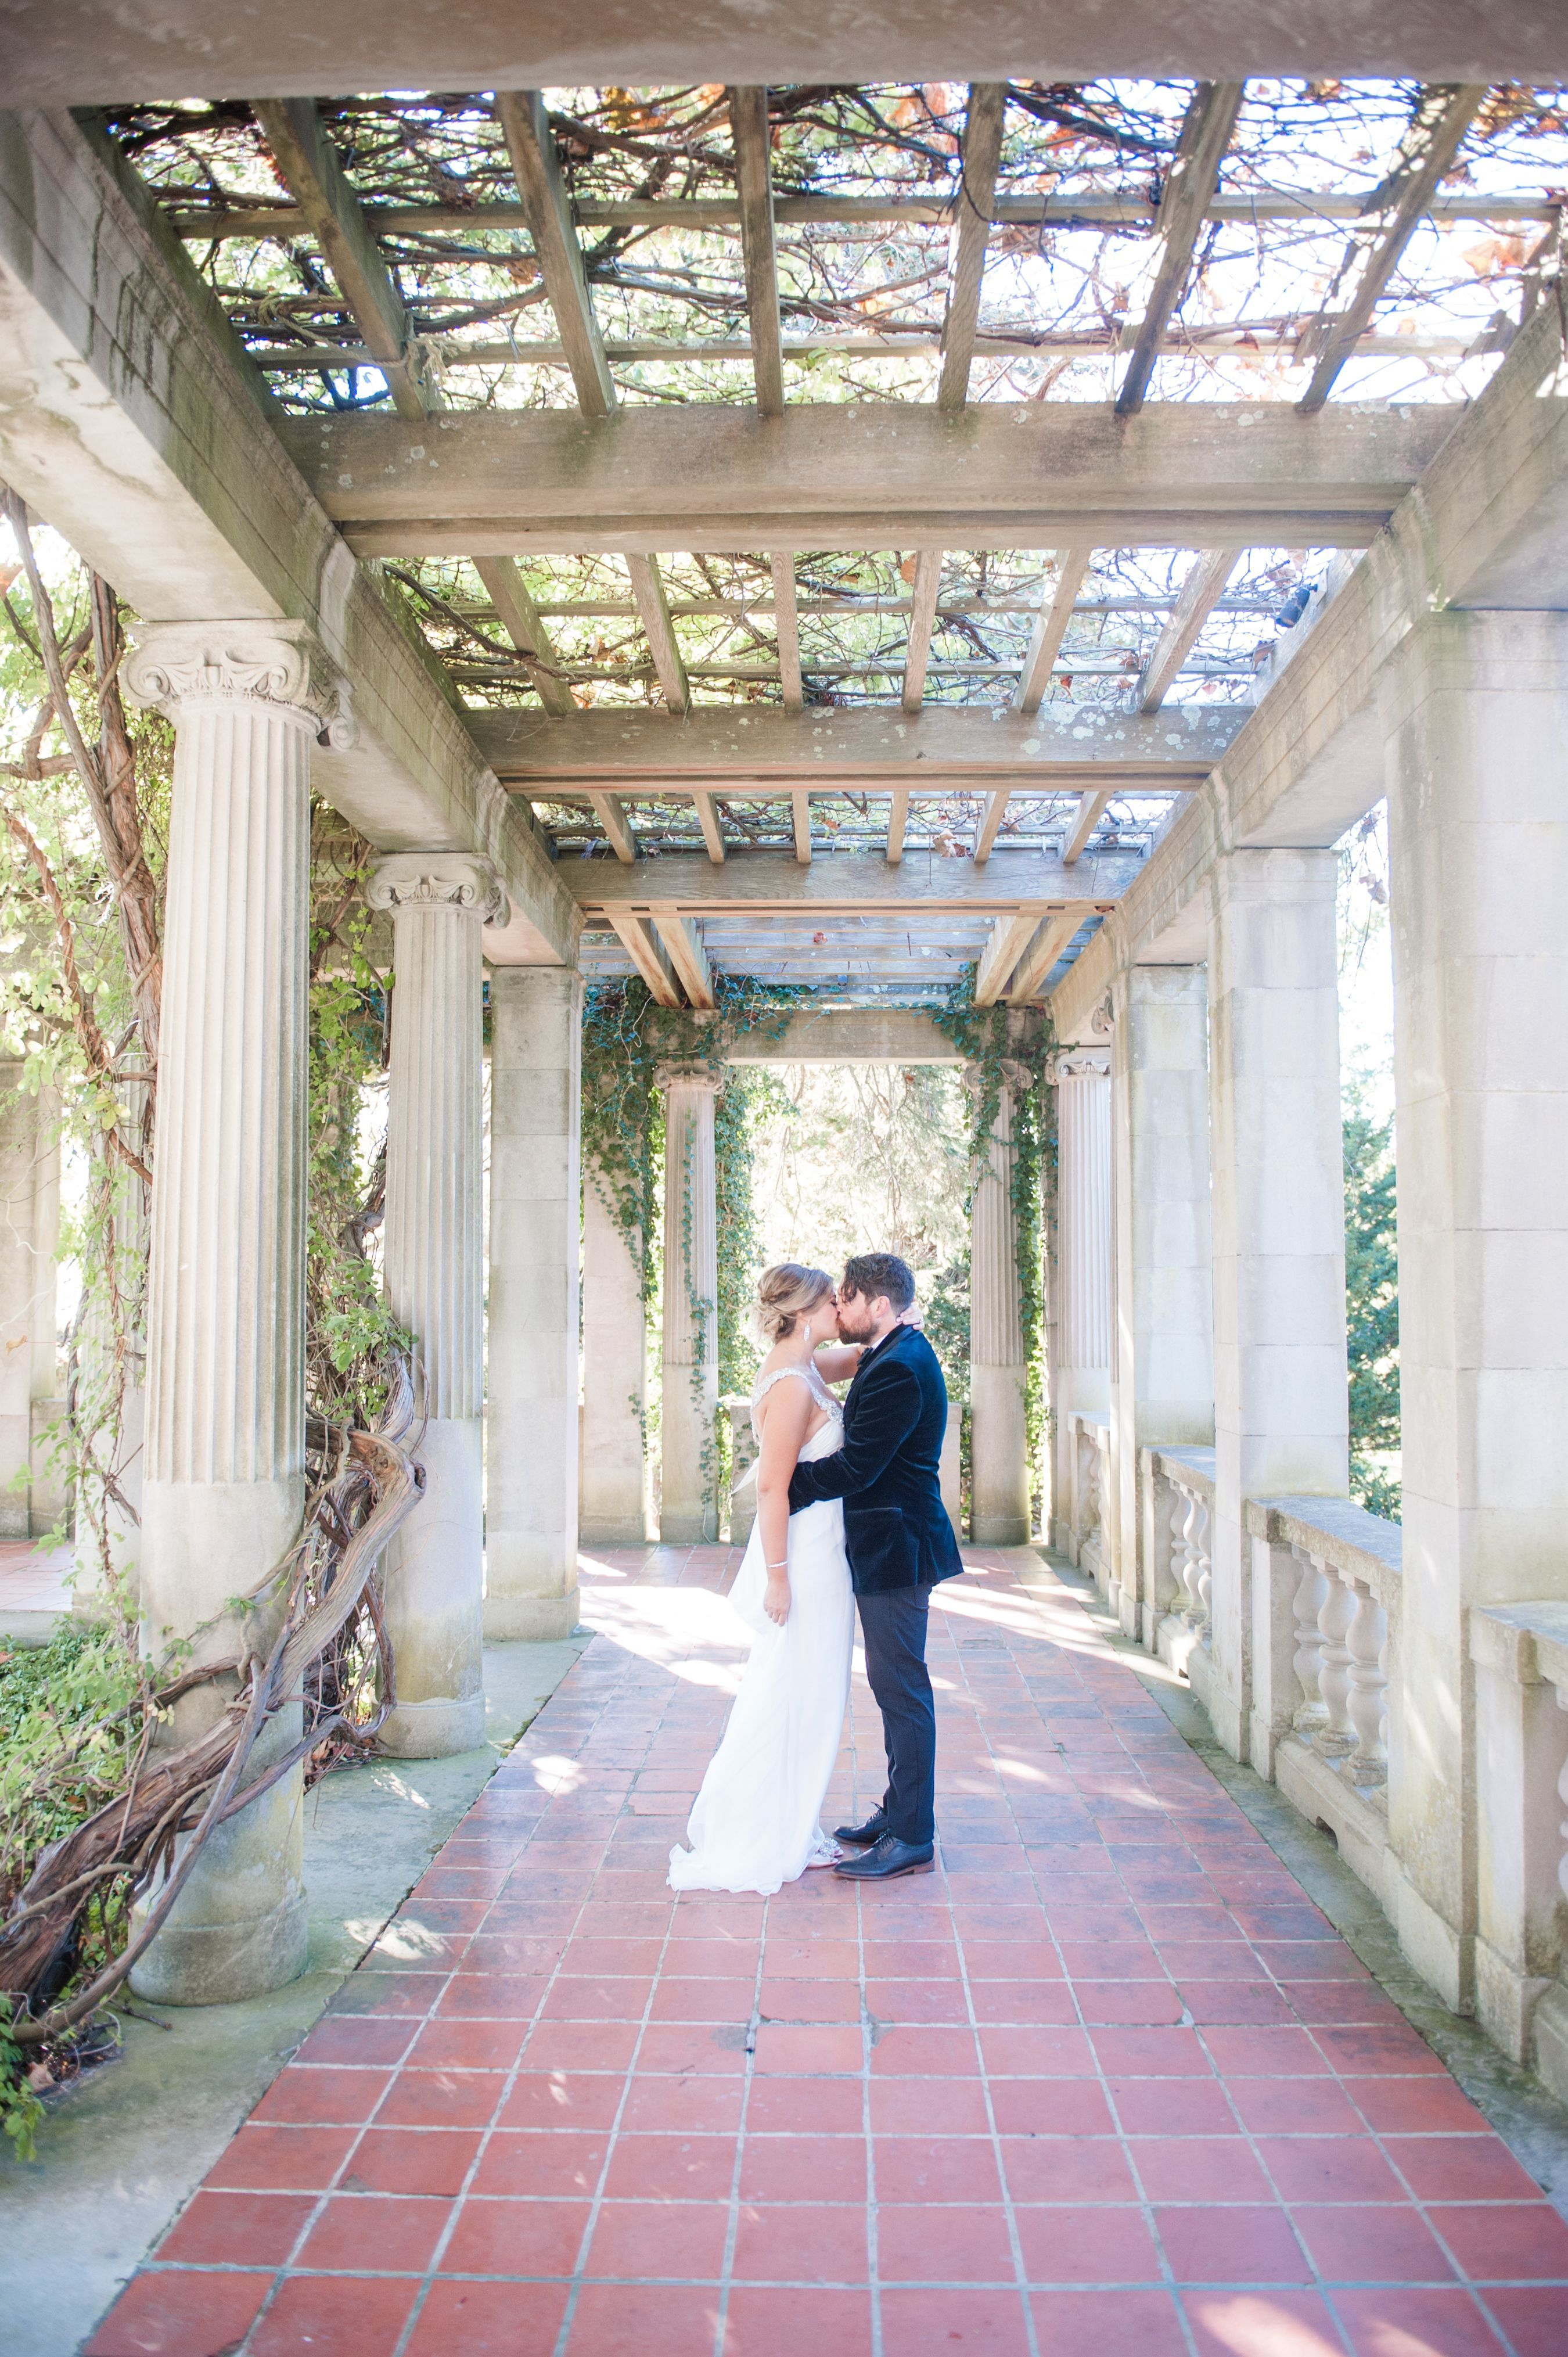 Kat Josh Real Wedding At Eolia Mansion At Harkness Memorial State Park Eolia Real Weddings State Parks